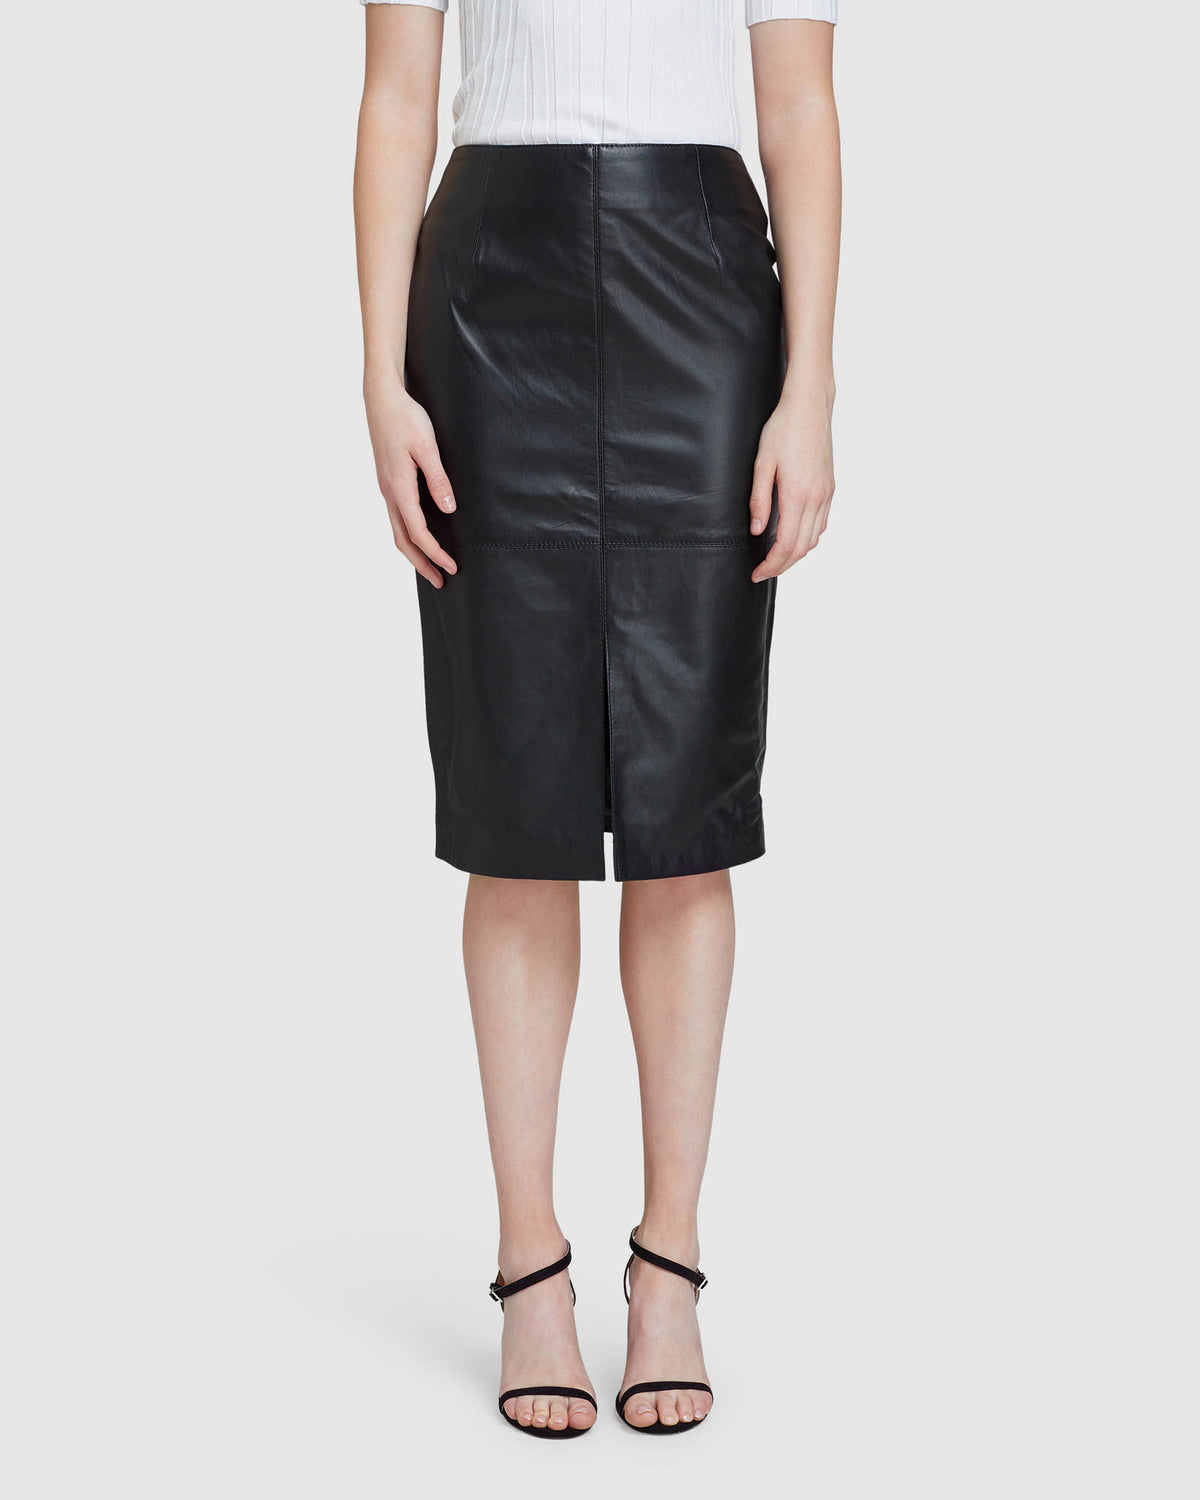 DARBY LEATHER PENCIL SKIRT BLACK